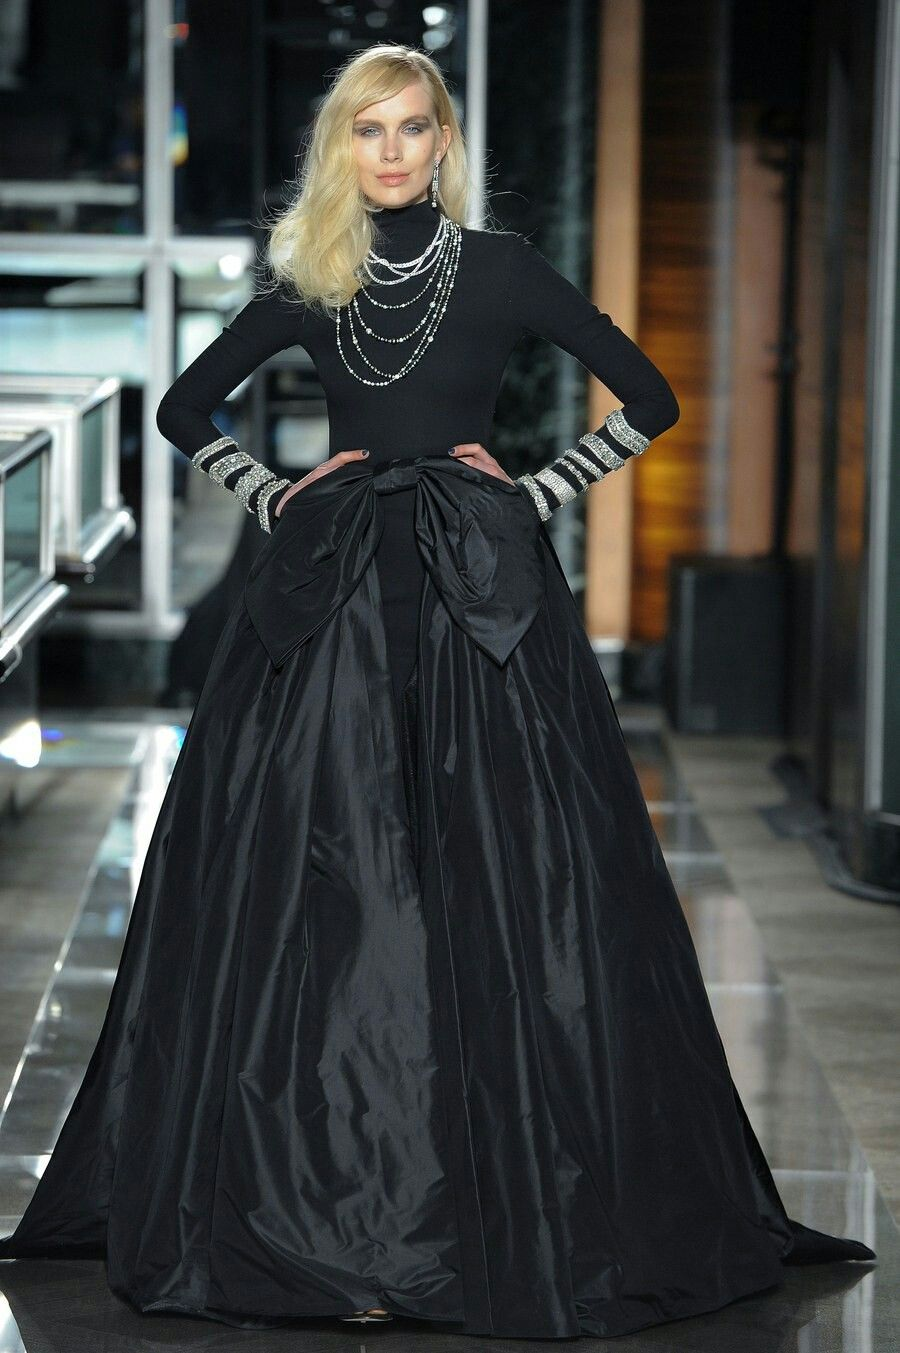 Pin by Antoinette Scott on Bridaleve gowns Pinterest Gowns and